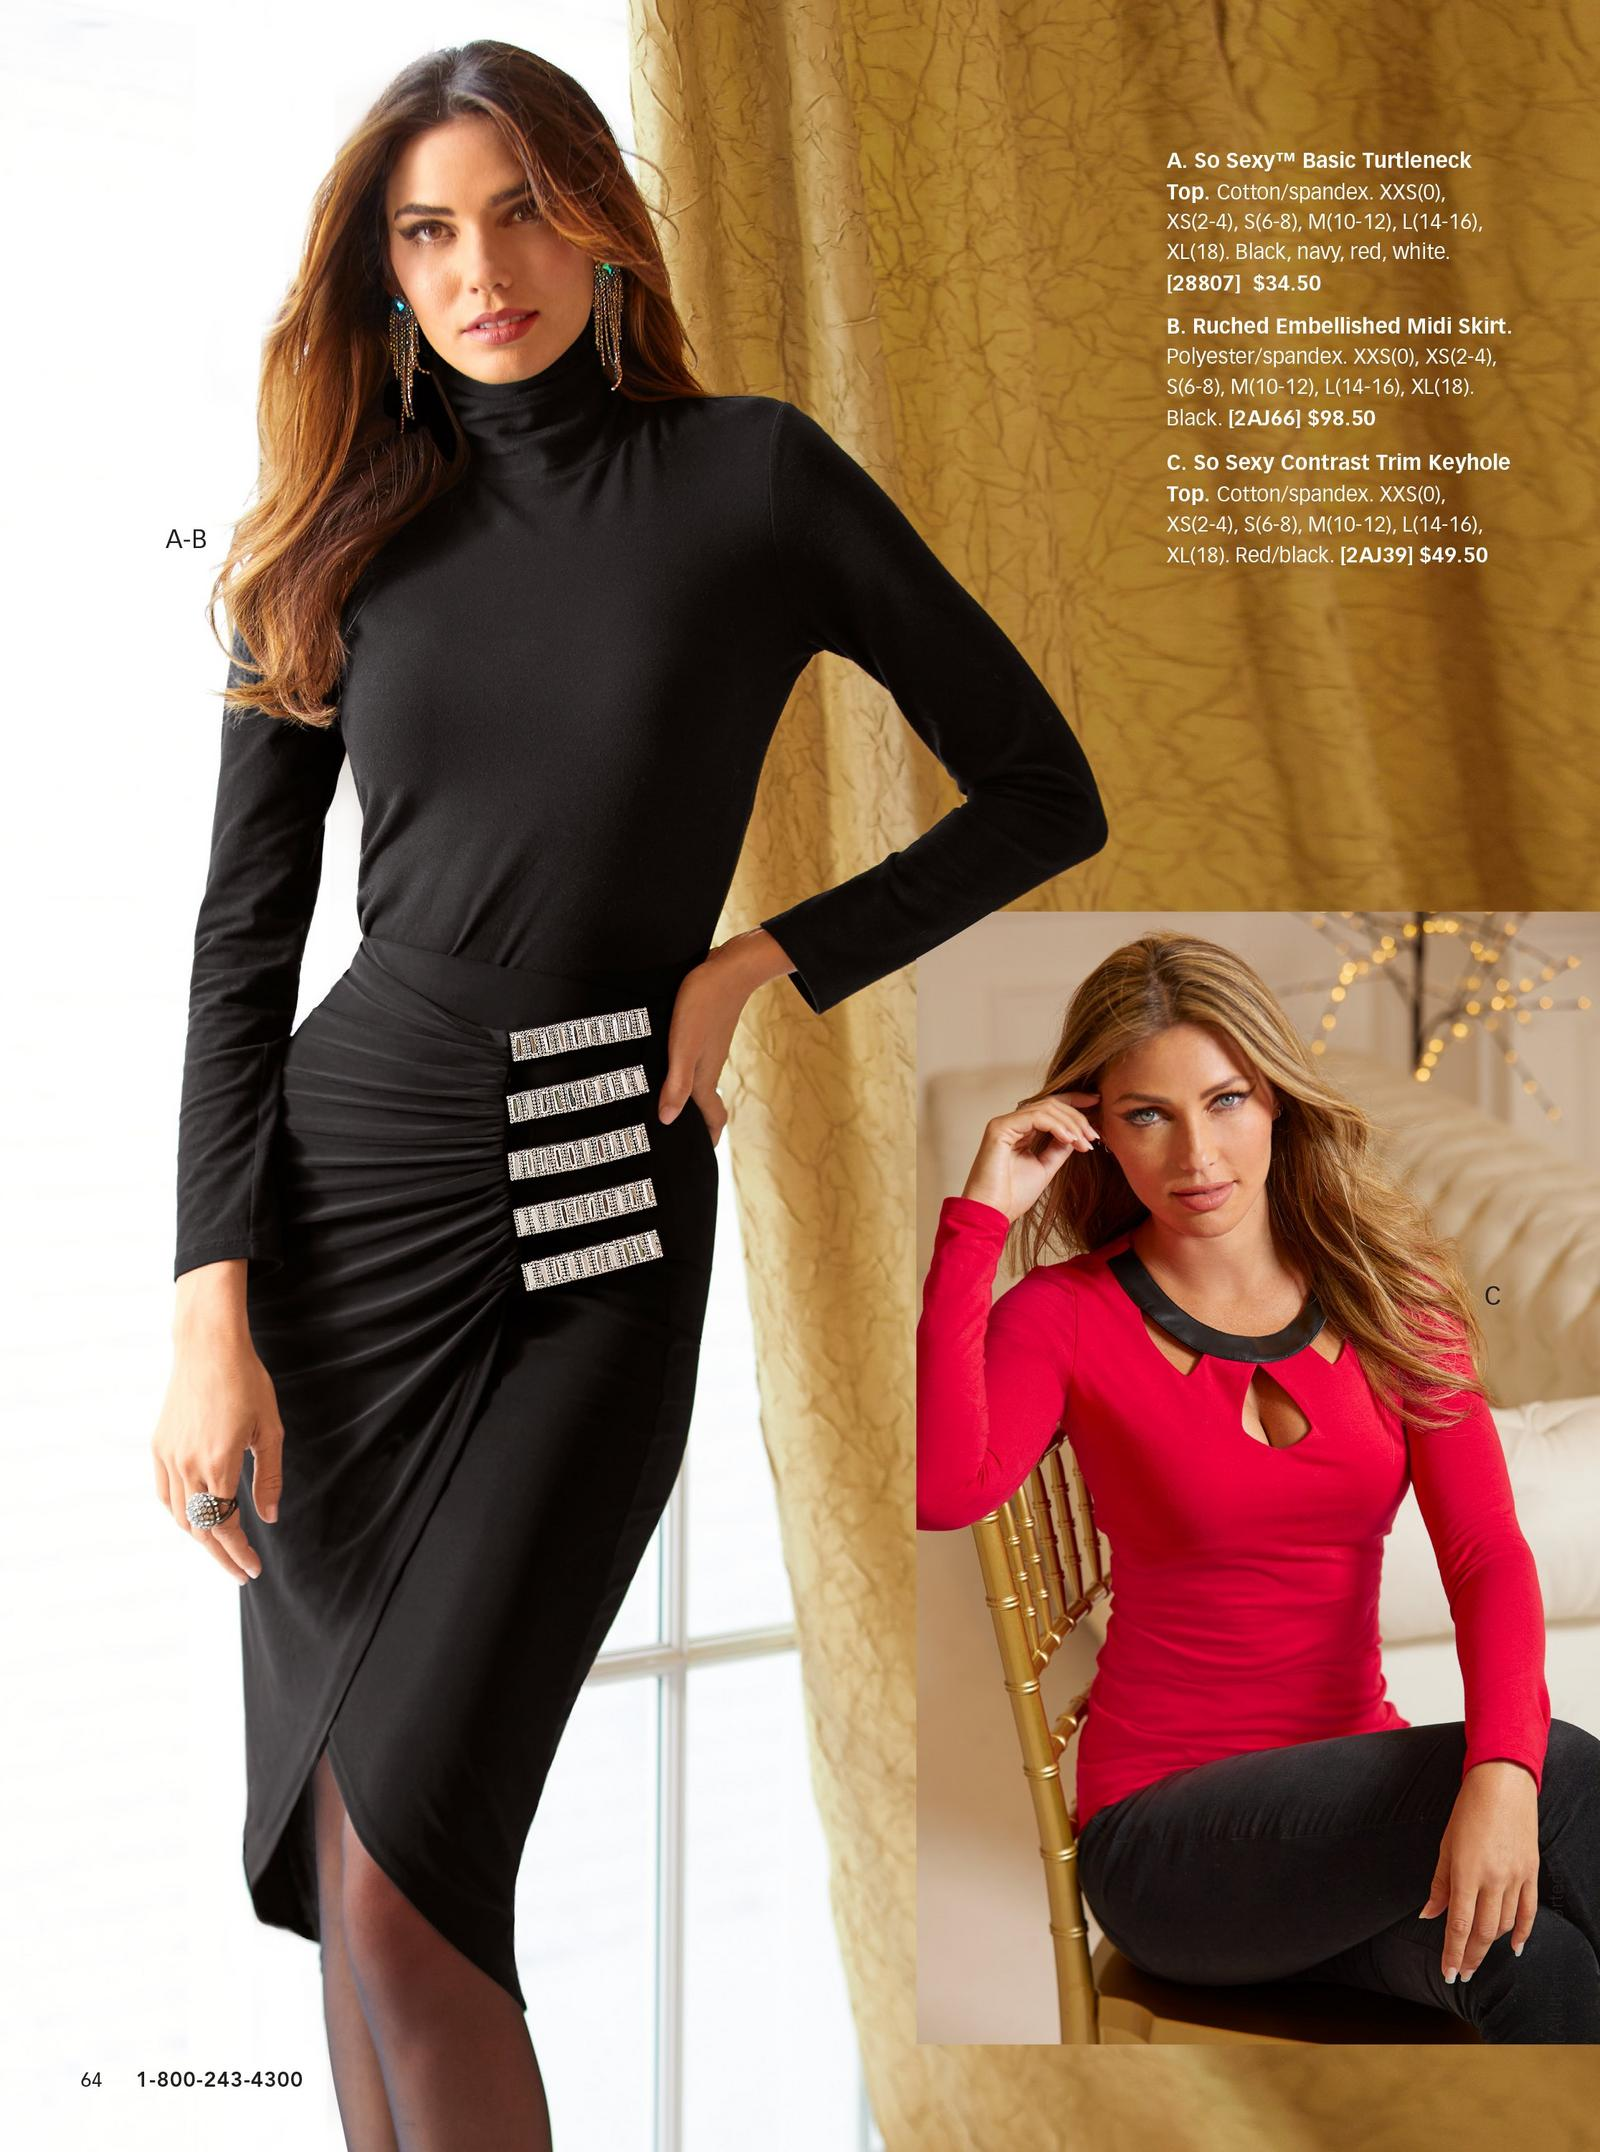 left model: black turtleneck and a ruched black skirt with diamond accents. right model: red long sleeved top with cutouts.